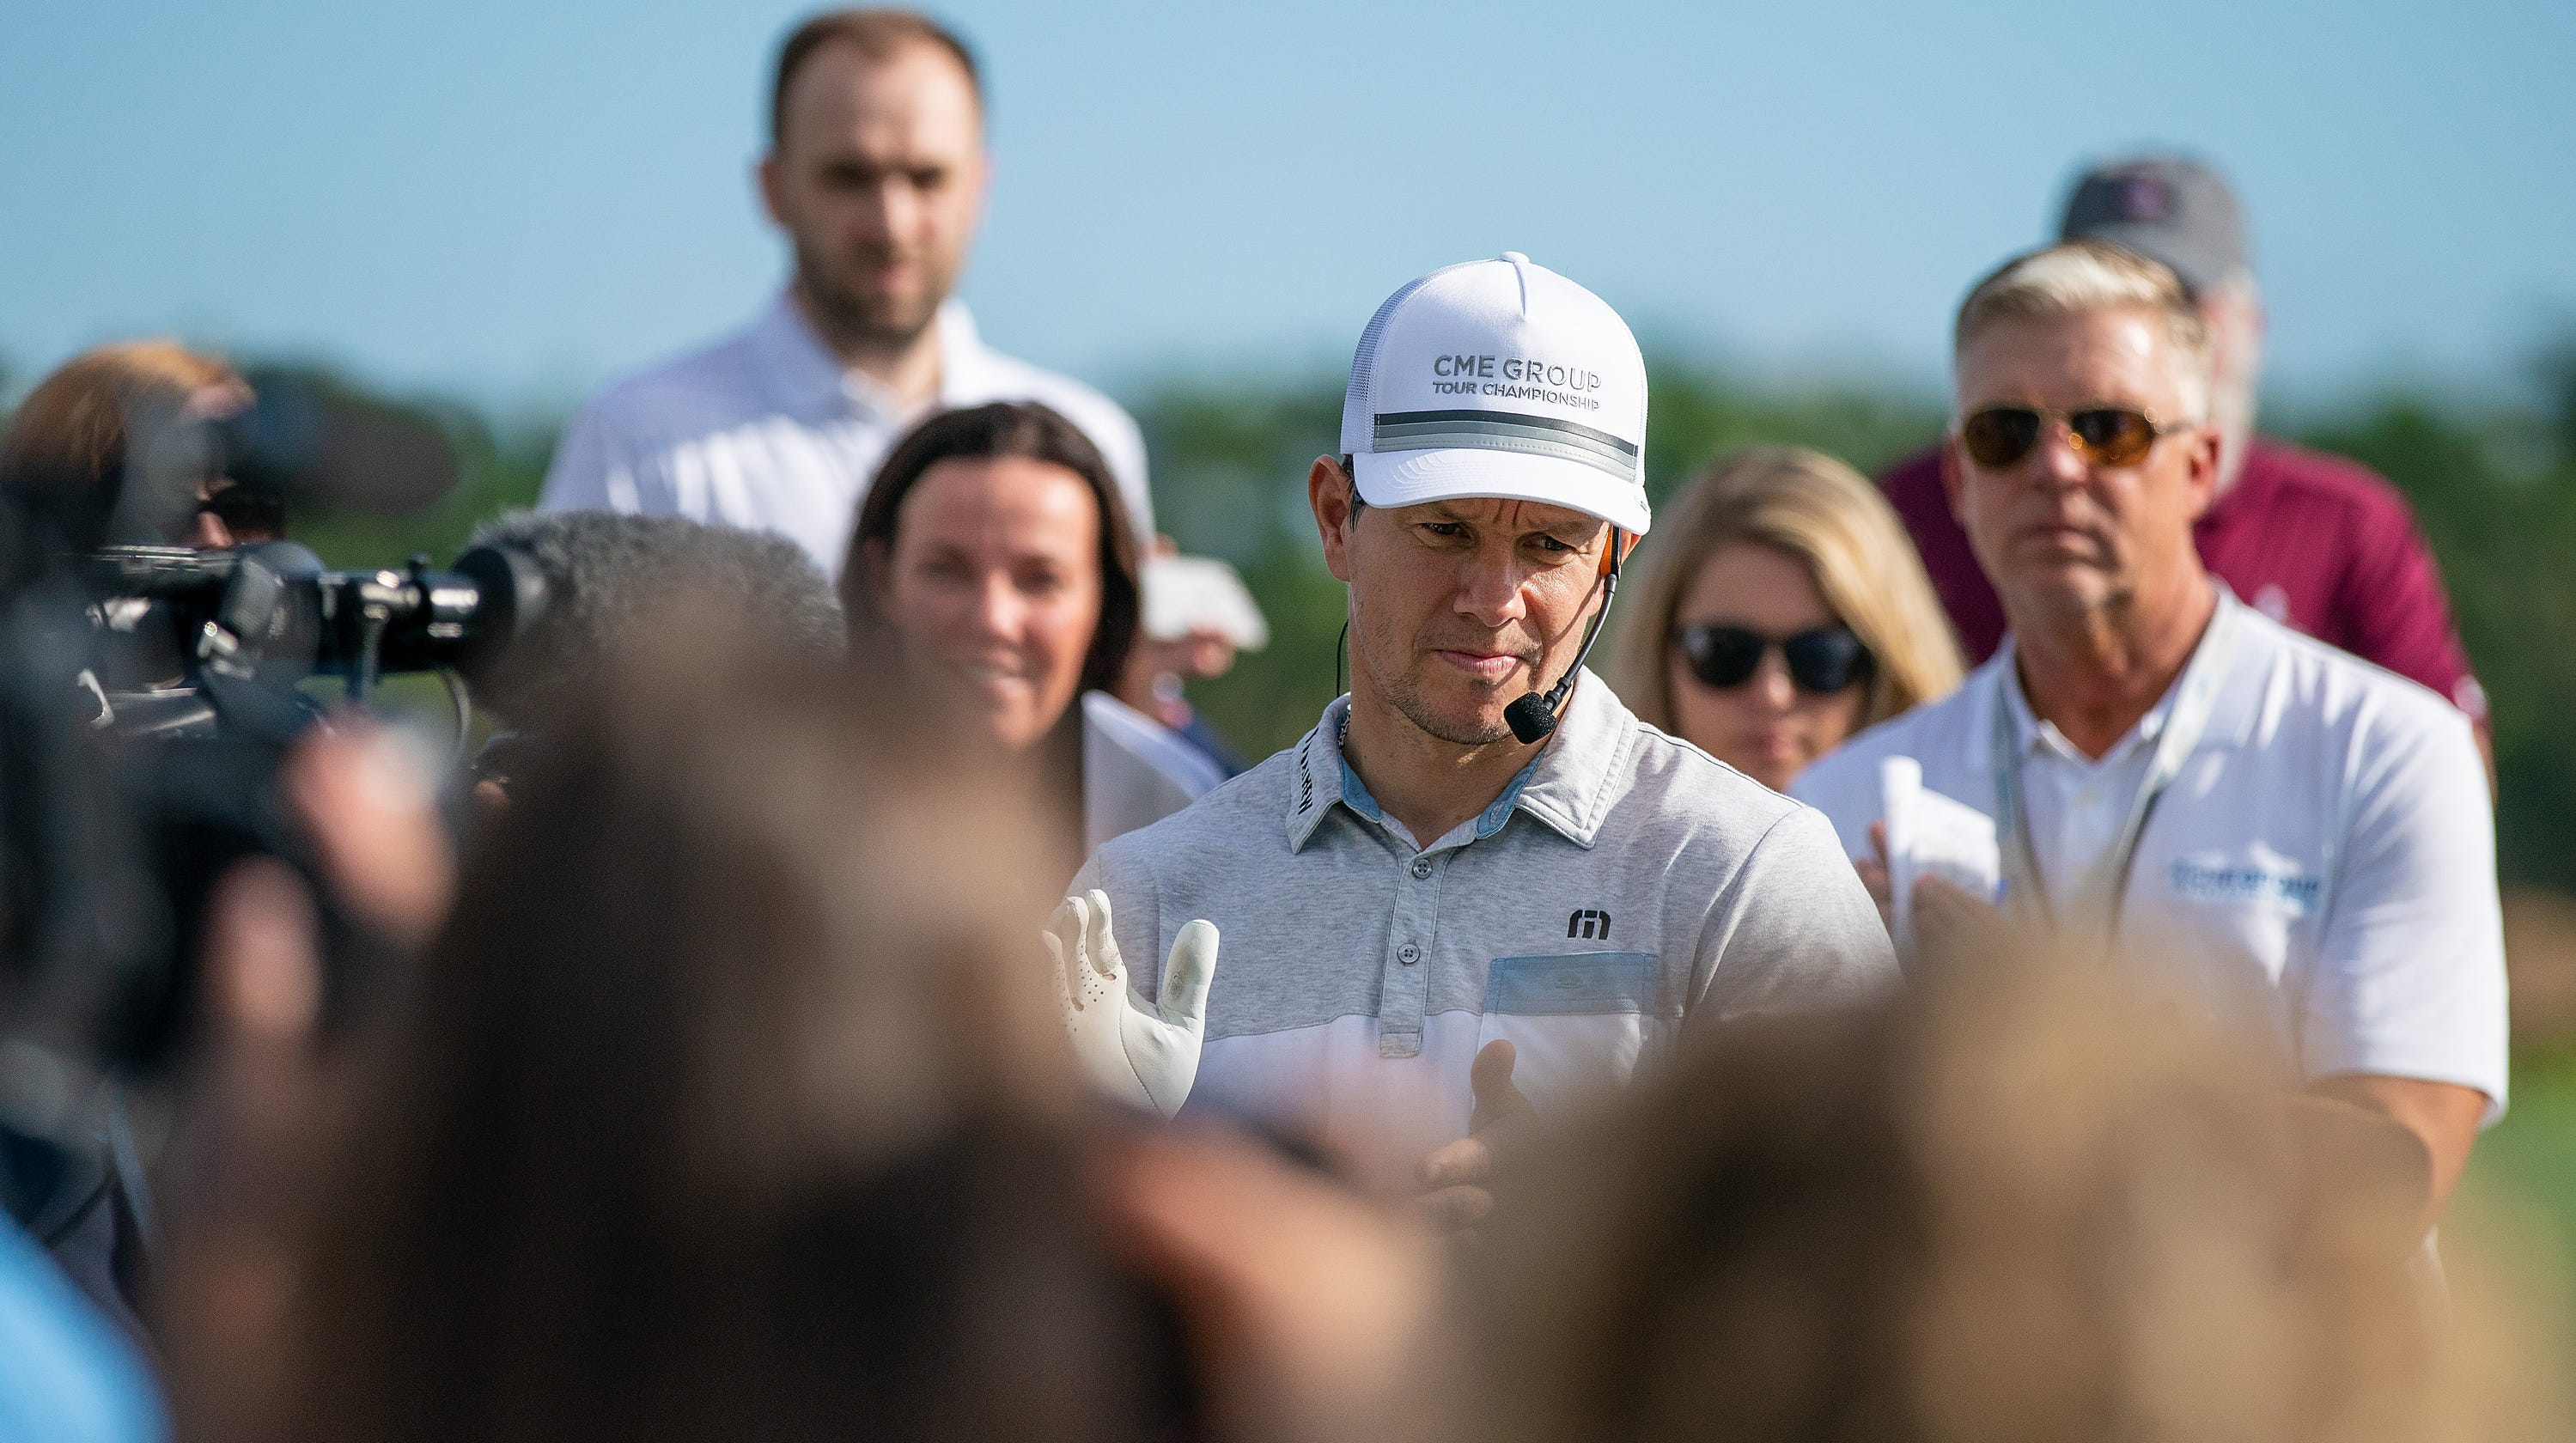 Actor Mark Wahlberg makes appearance for charity at CME Group golf